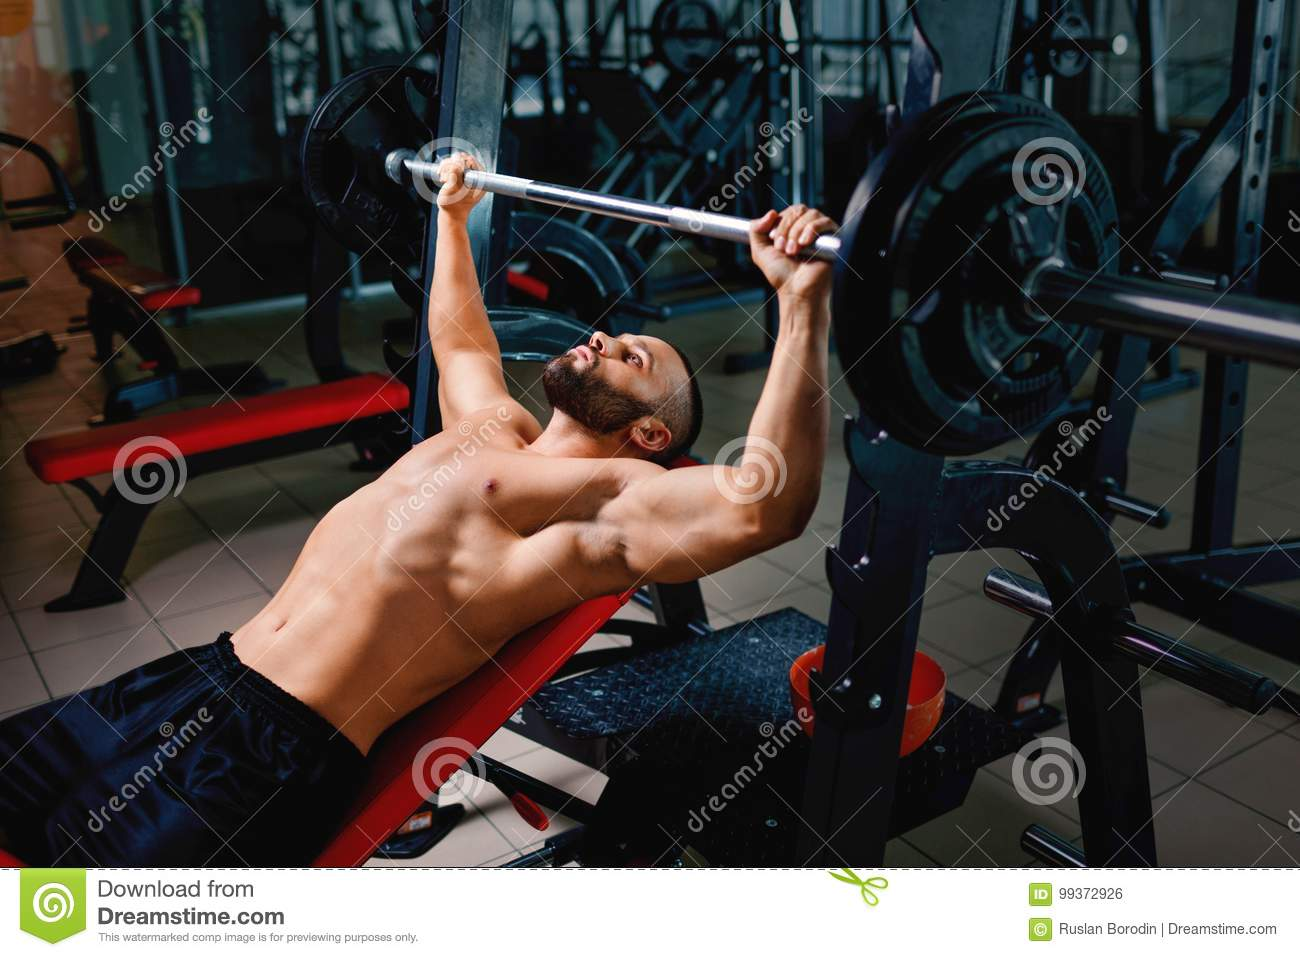 A Hot Man With Strong Muscular Body Performs A Bench Press Using A Barbell On A